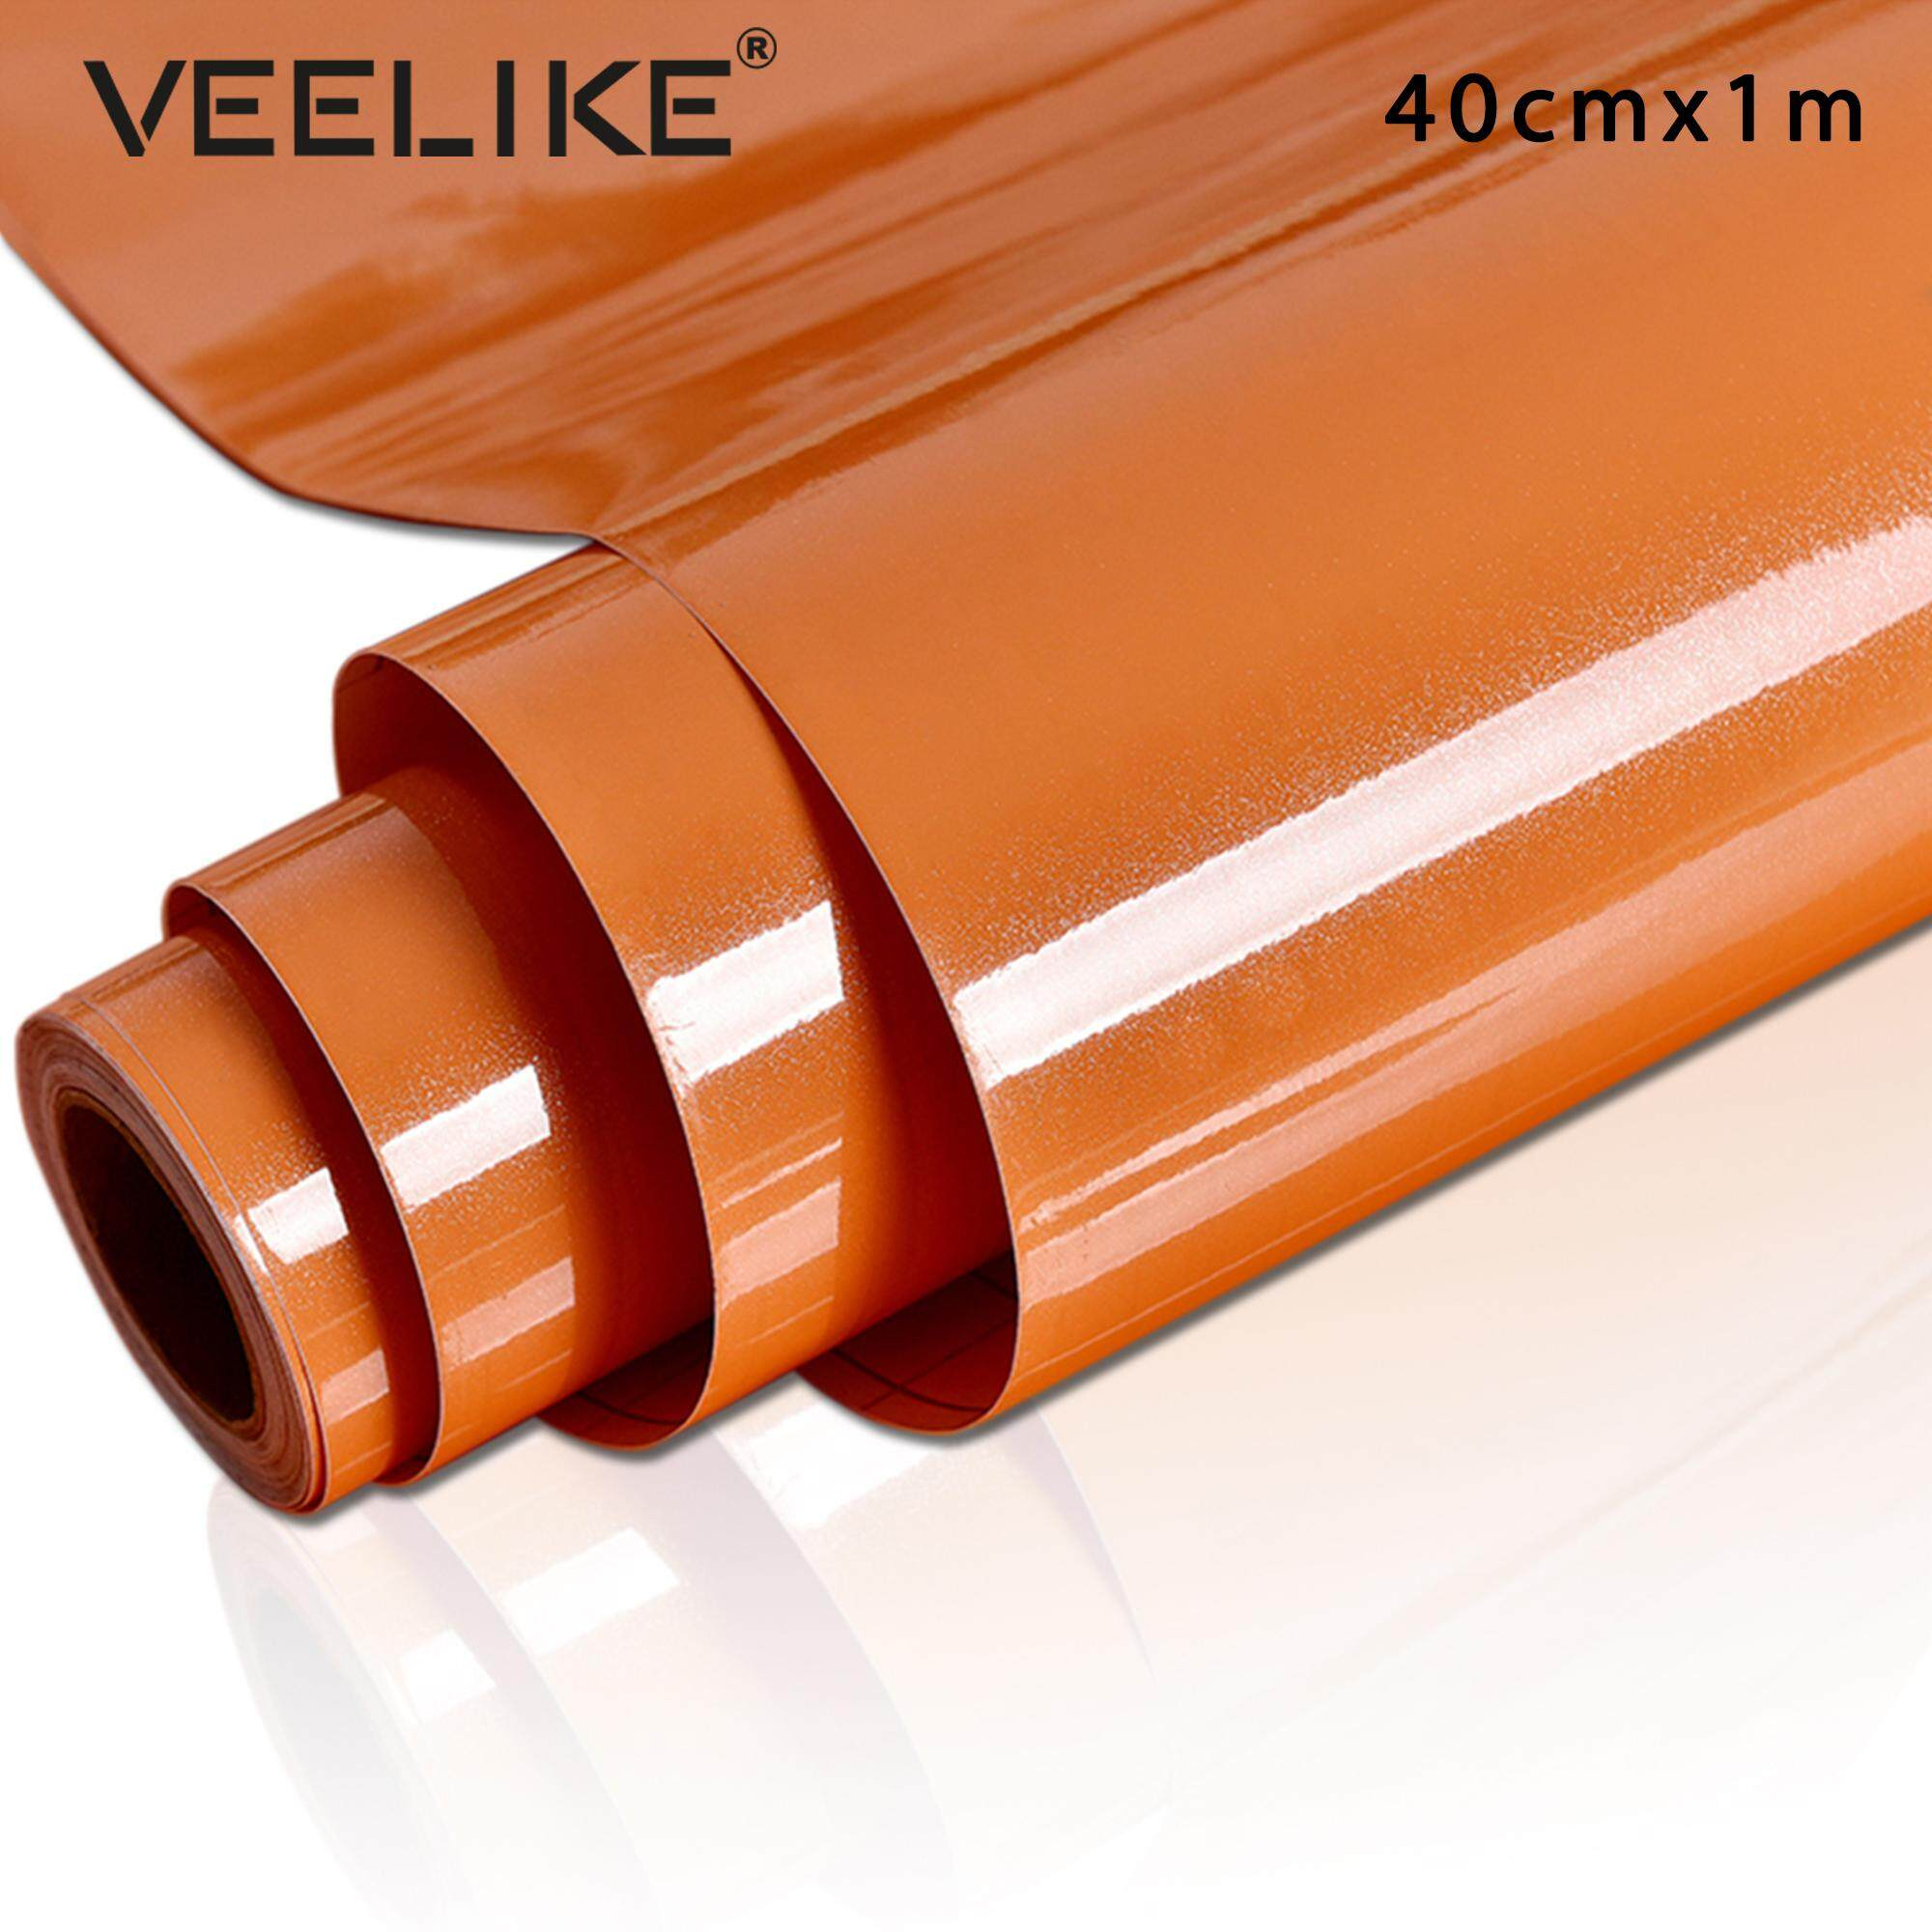 Veelike High Glossy Removable Self Adhesive Wall Paste for Cabinets Shelf Liner Peel and Stick Home Decoration Kitchen Decor Wallpaper 40cm*1m